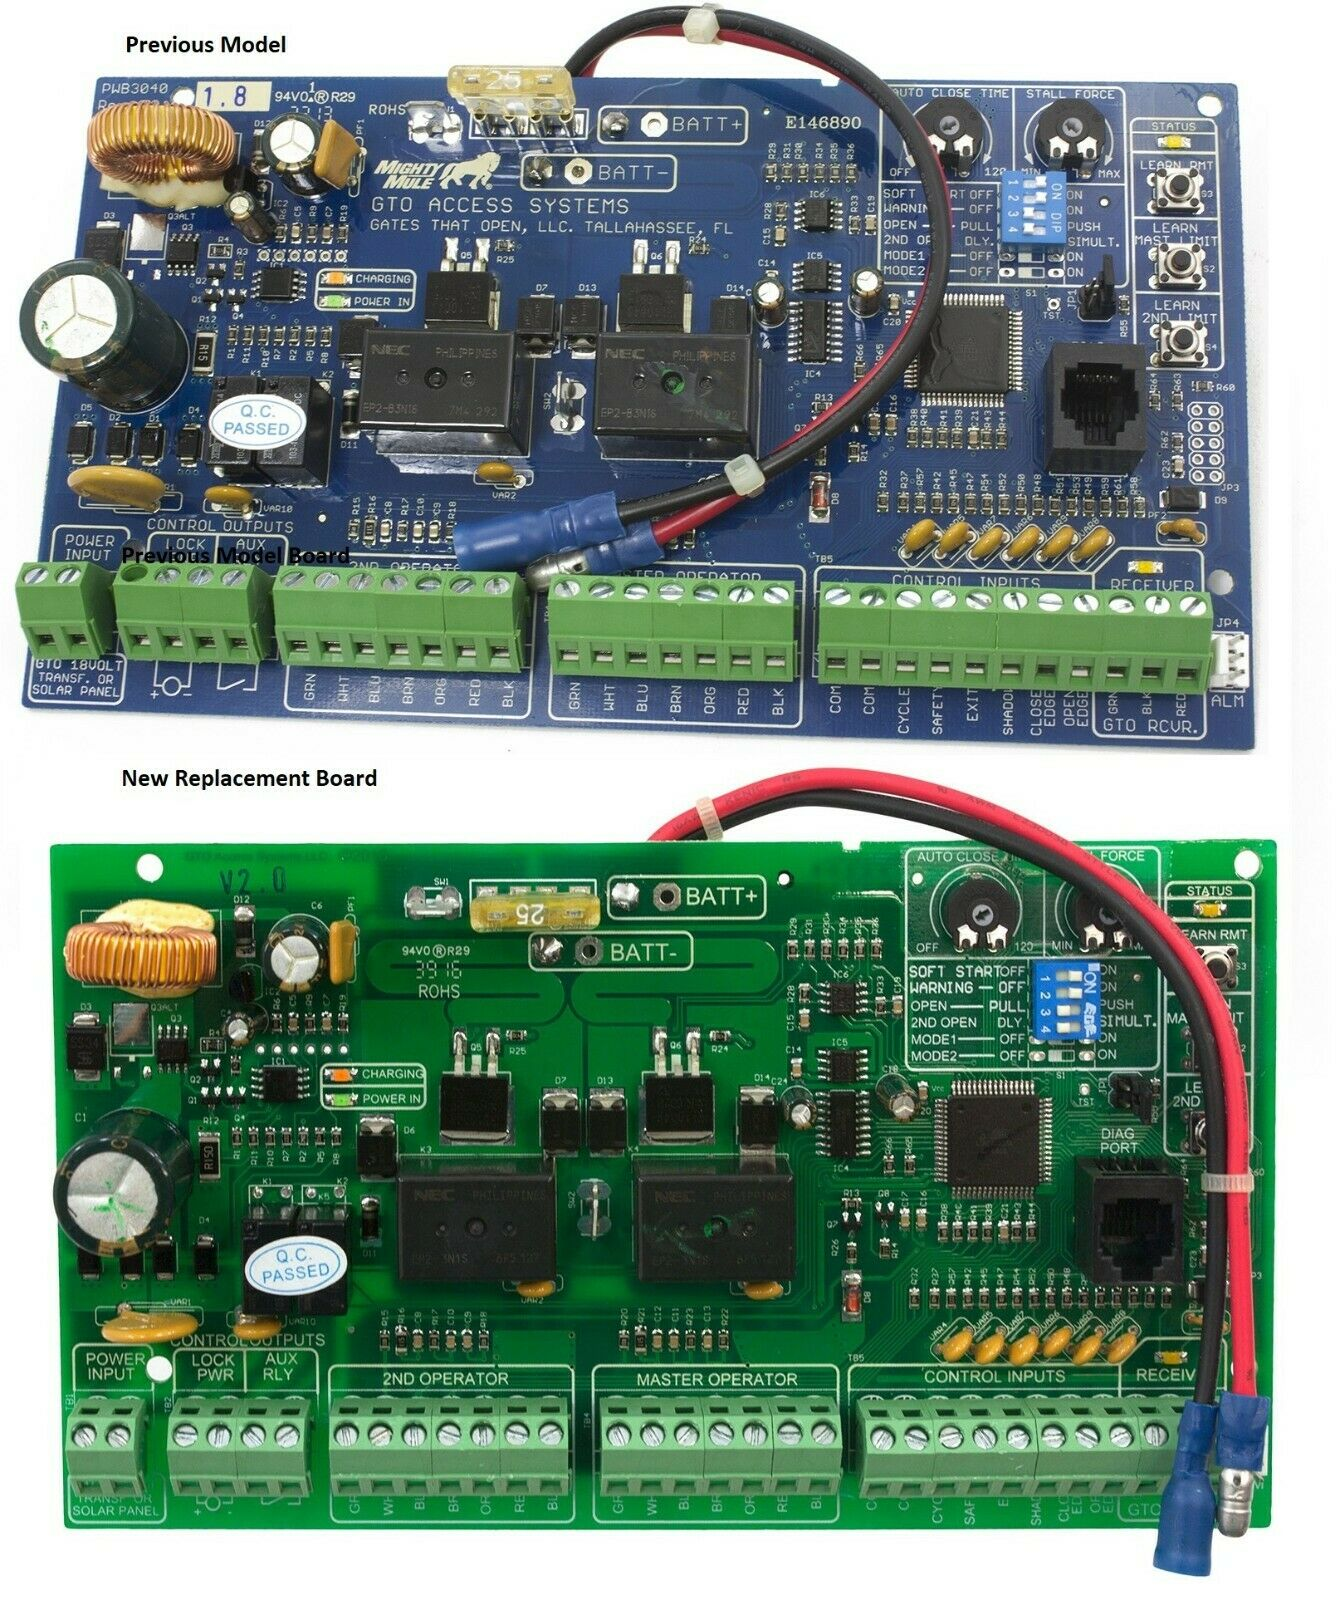 Gto Sw4000xl Sw4200xl Parts Replacement Control Circuit Board For Learn About Boards 1 Of 1free Shipping